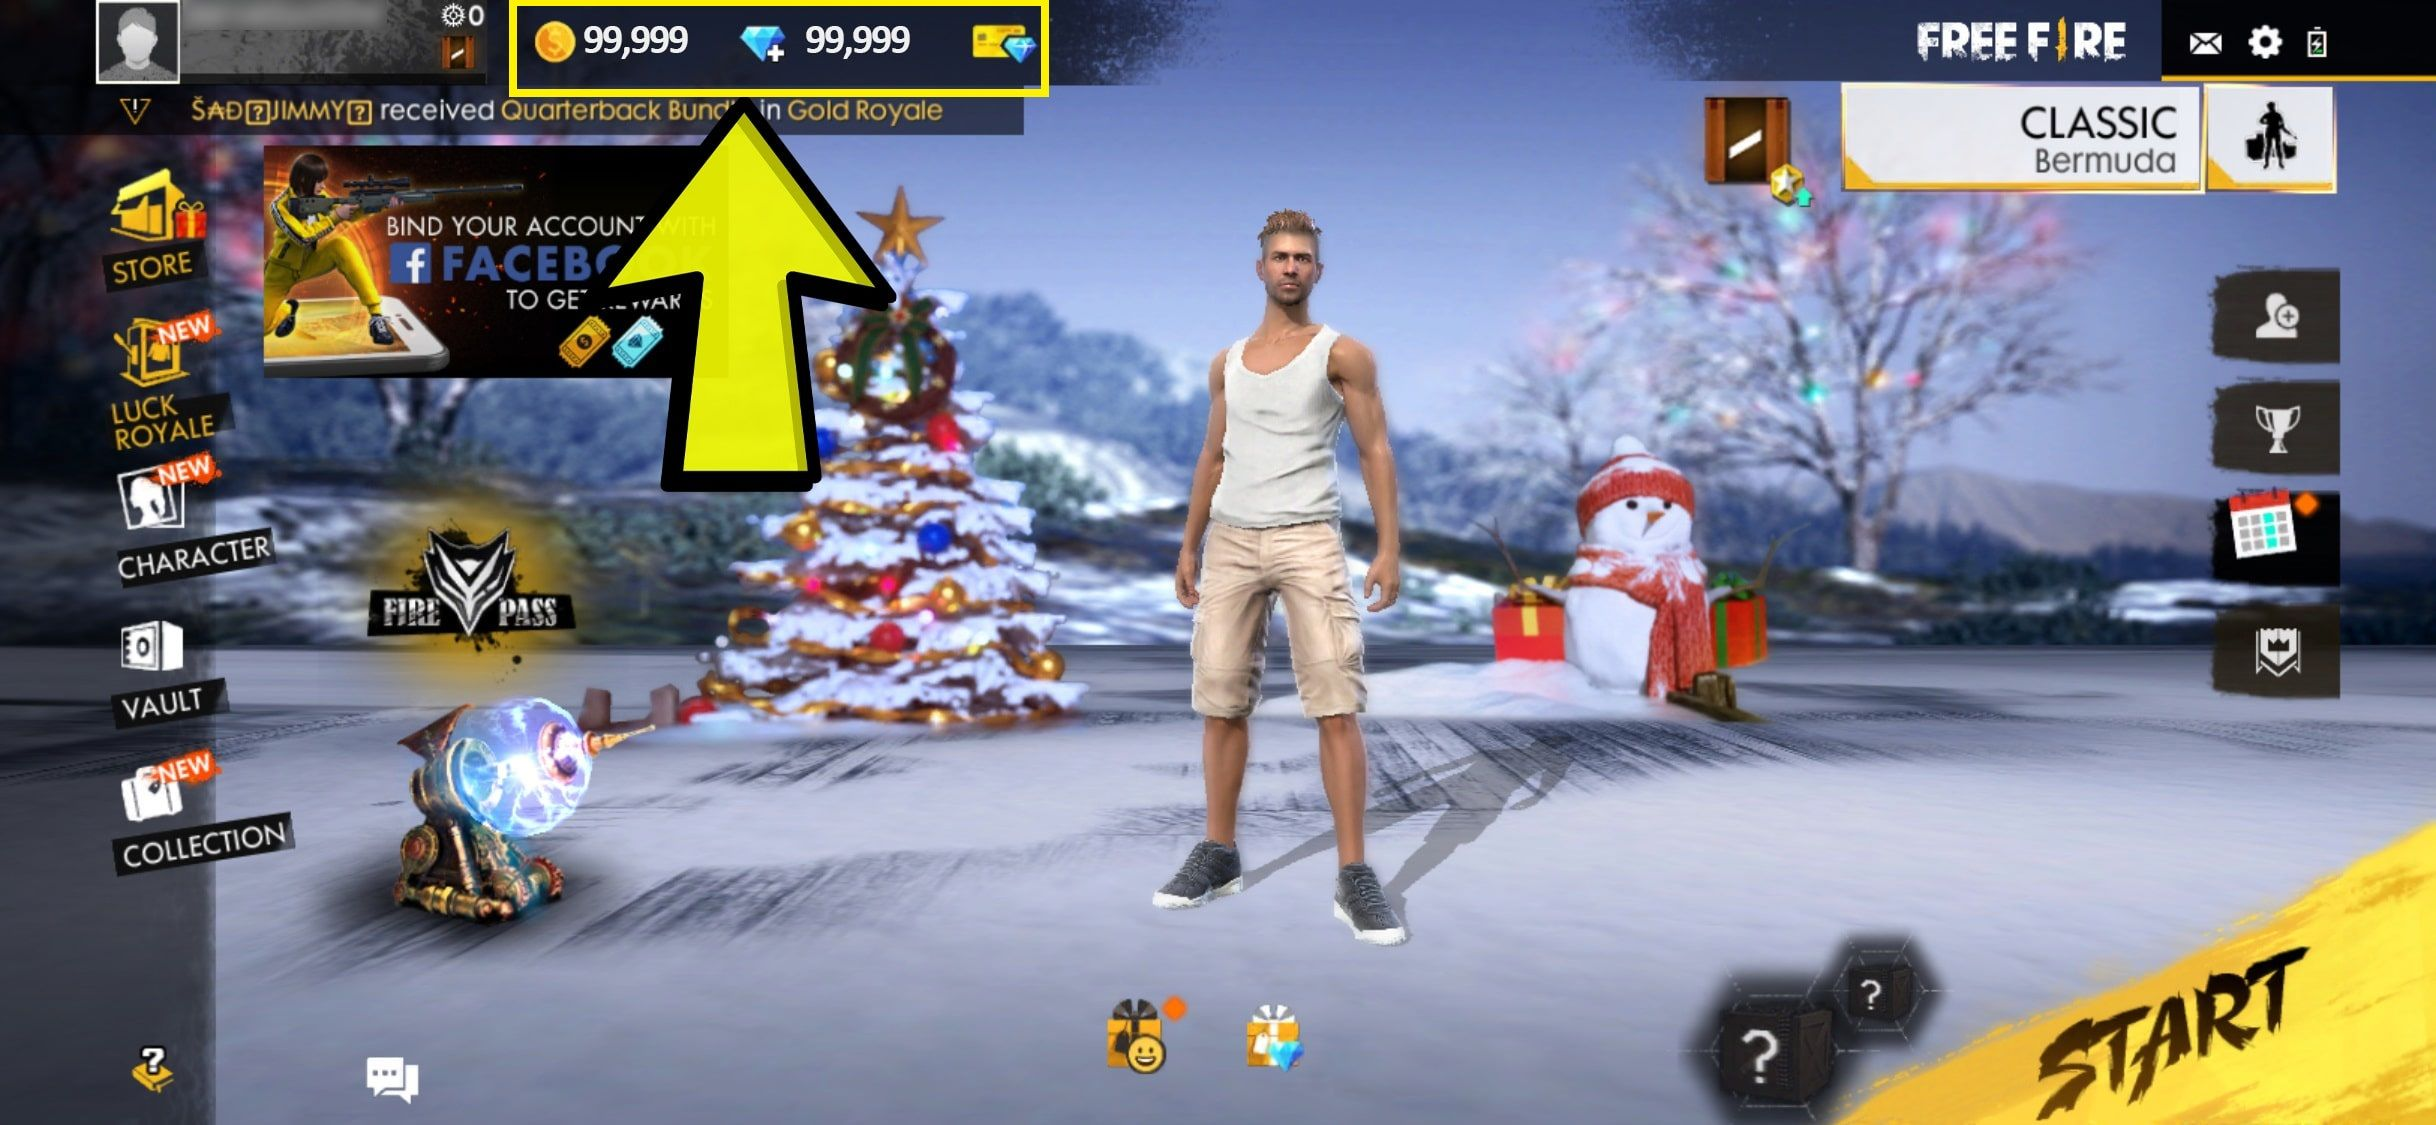 Garena Free Fire Hack Diamonds And Coins Cheats New Android